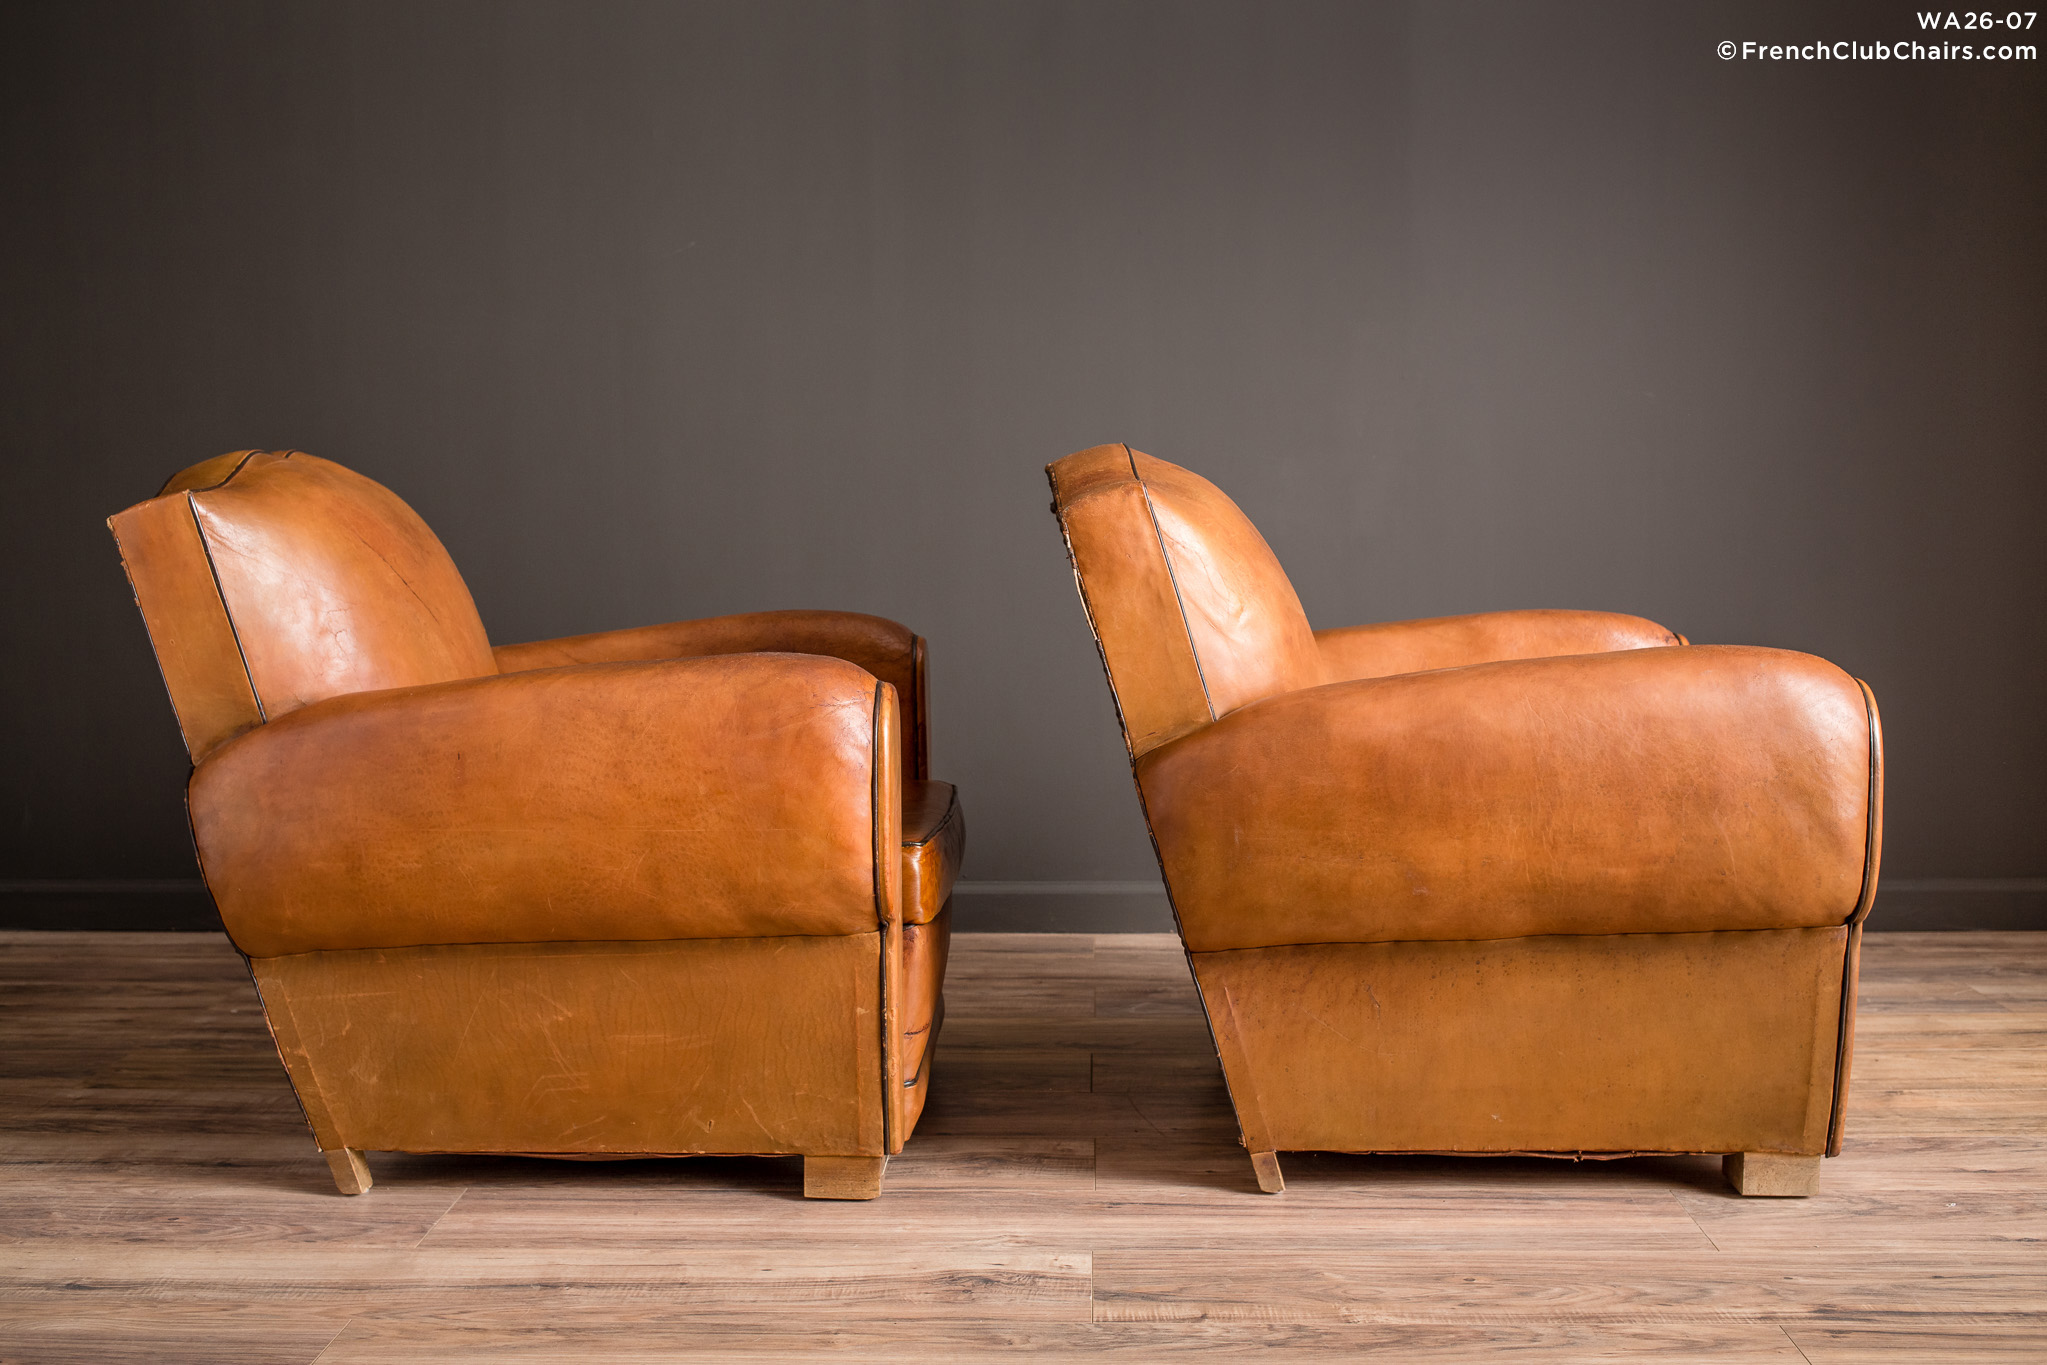 WA_26-07_Marseille_Mustache_Pair_R_3RT-v01-williams-antiks-leather-french-club-chair-wa_fcccom